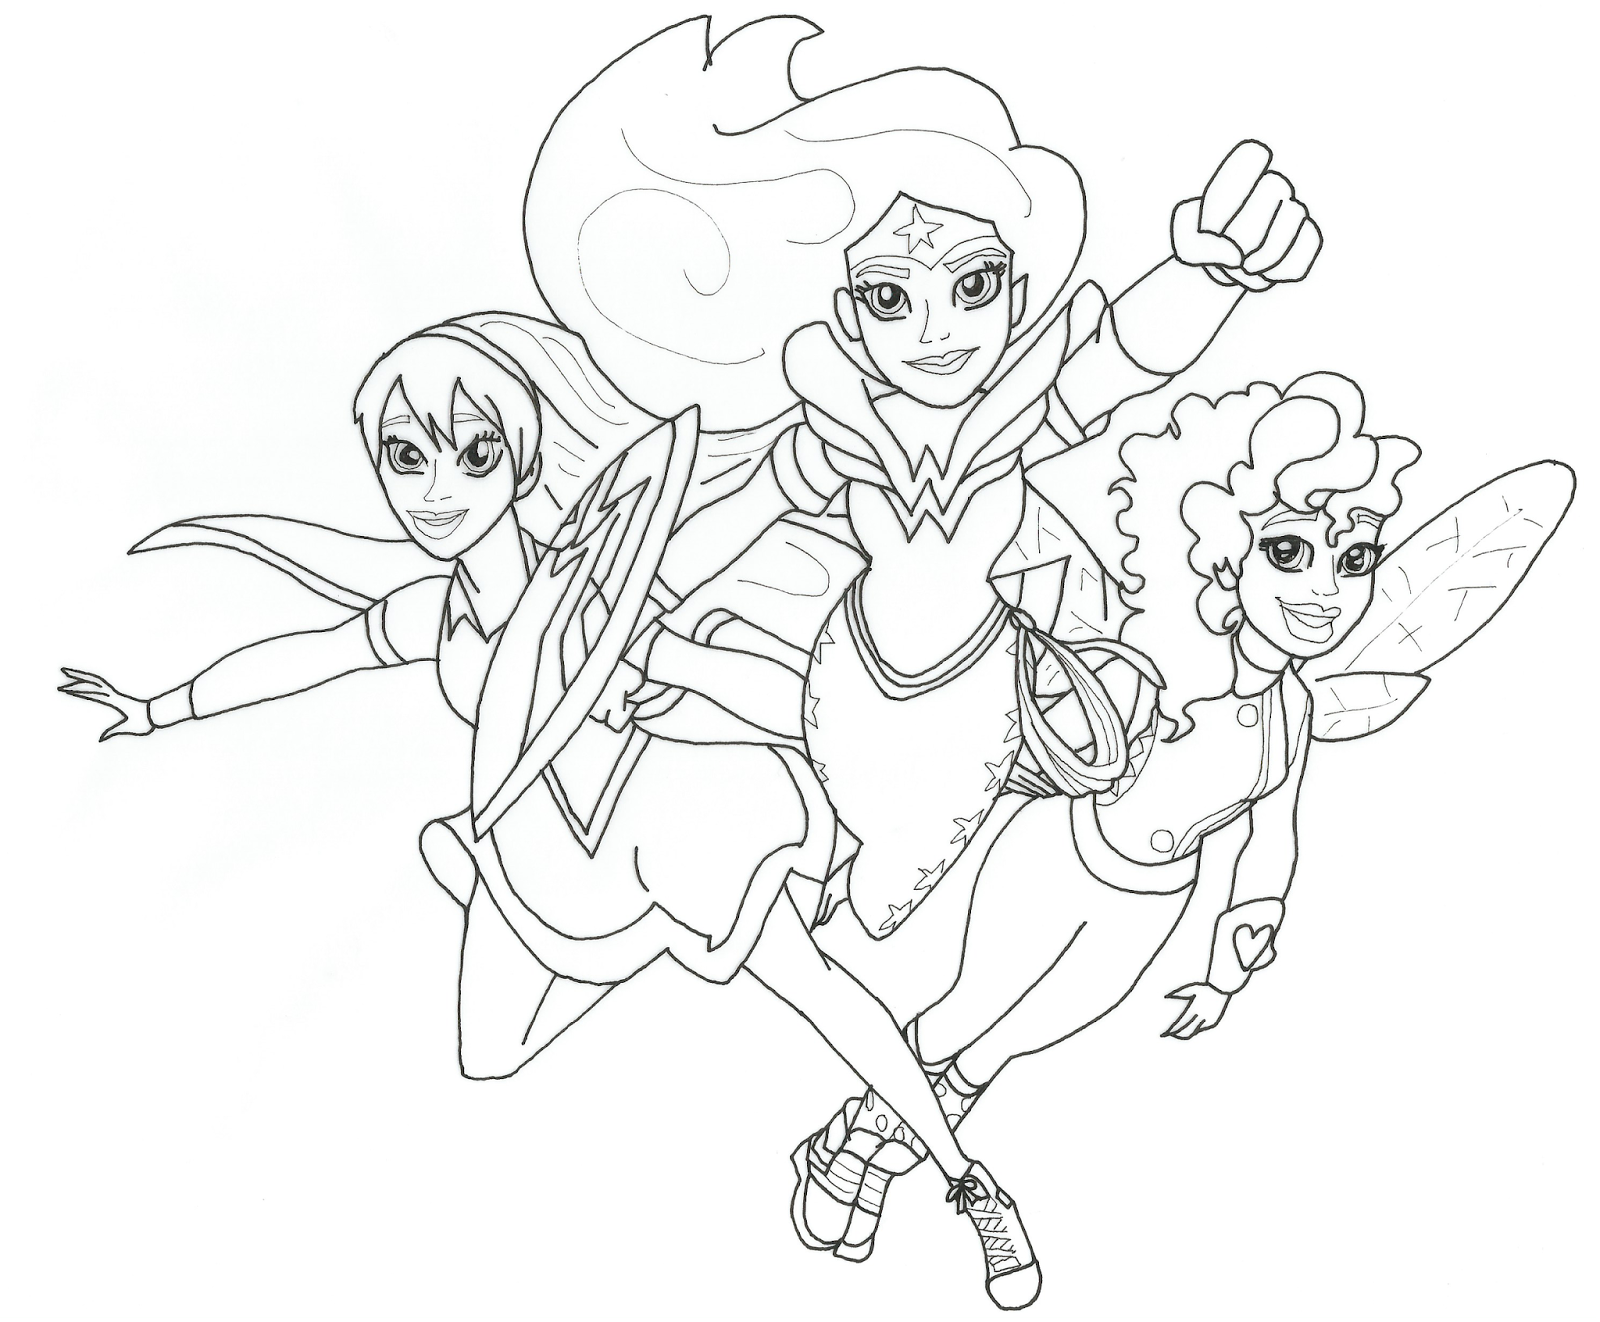 Free Coloring Pages for Kids Hero